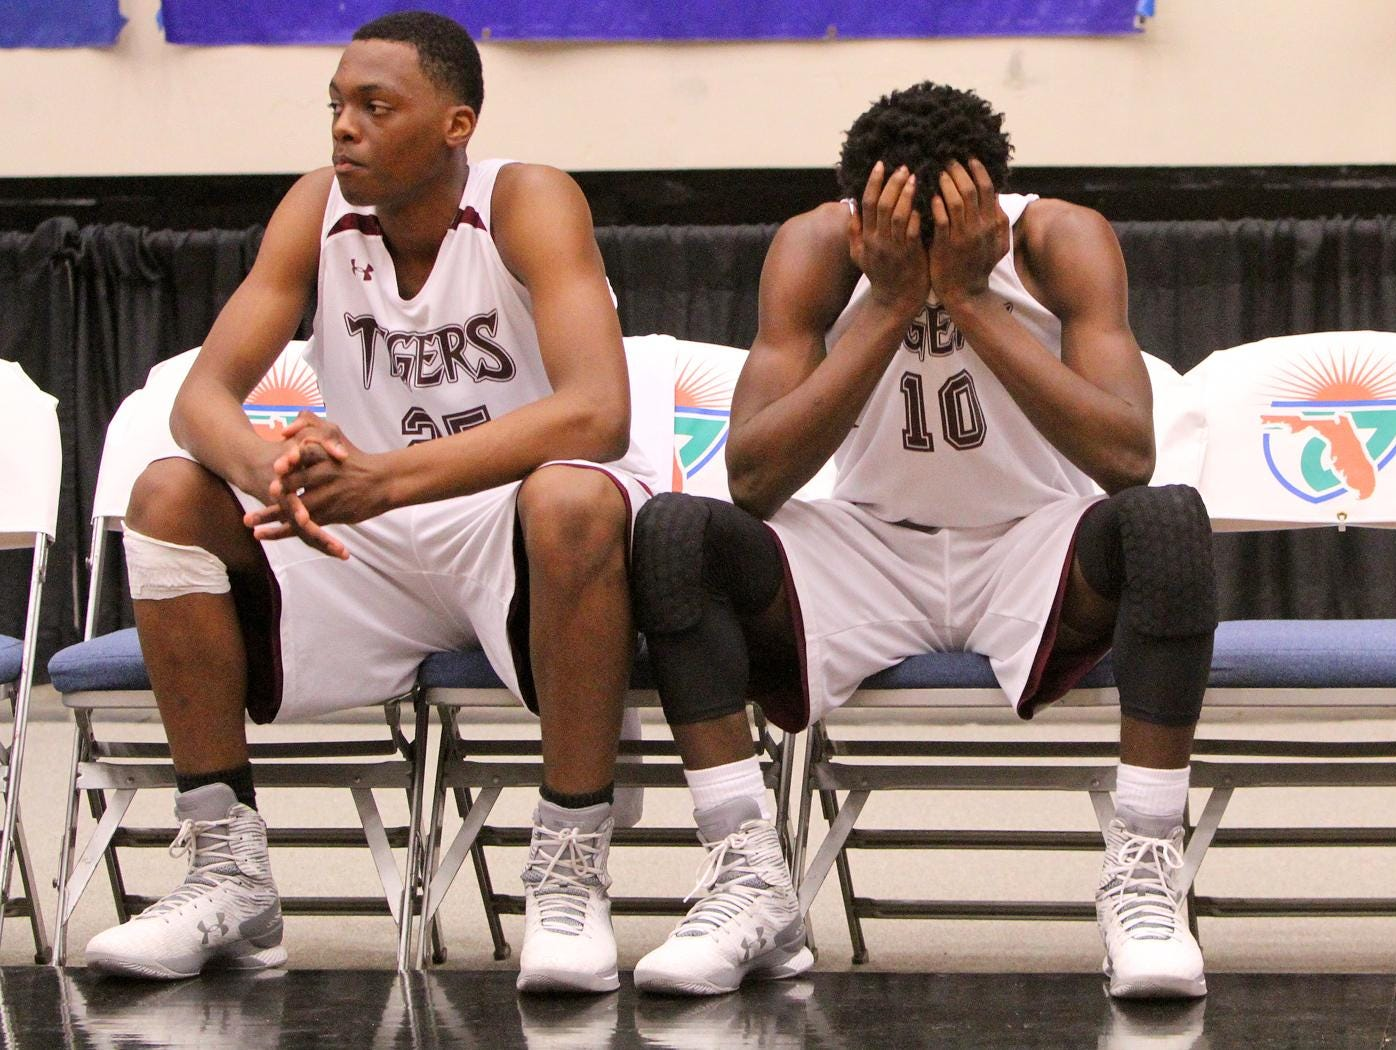 Pensacola Javon Grimsley and Zykereyan Jones on the bench after losing the match to Largo during the FHSAA 6A semi final Friday February 26, 2016 in Lakeland, Florida. Pensacola lost the match 54-56.